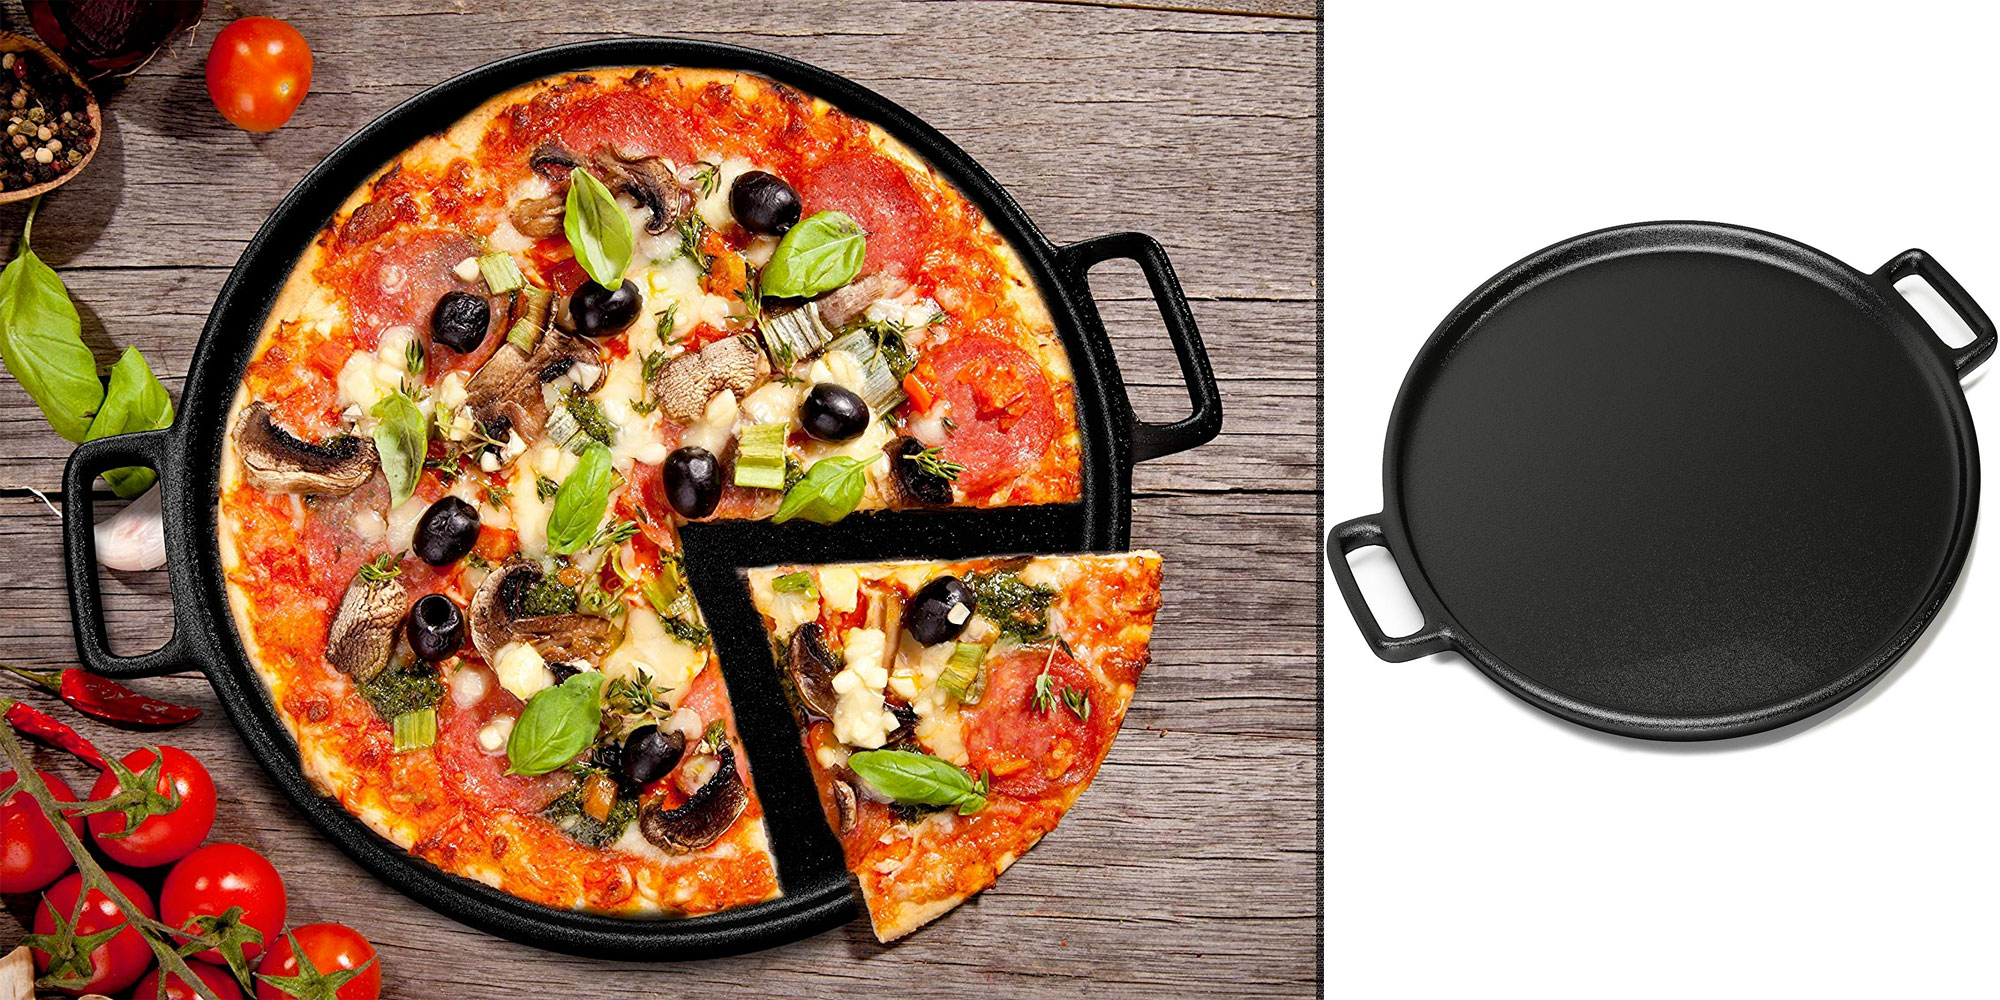 Enjoy homemade pizza on this 14-inch cast iron pizza pan for just $16 (Reg. $25)